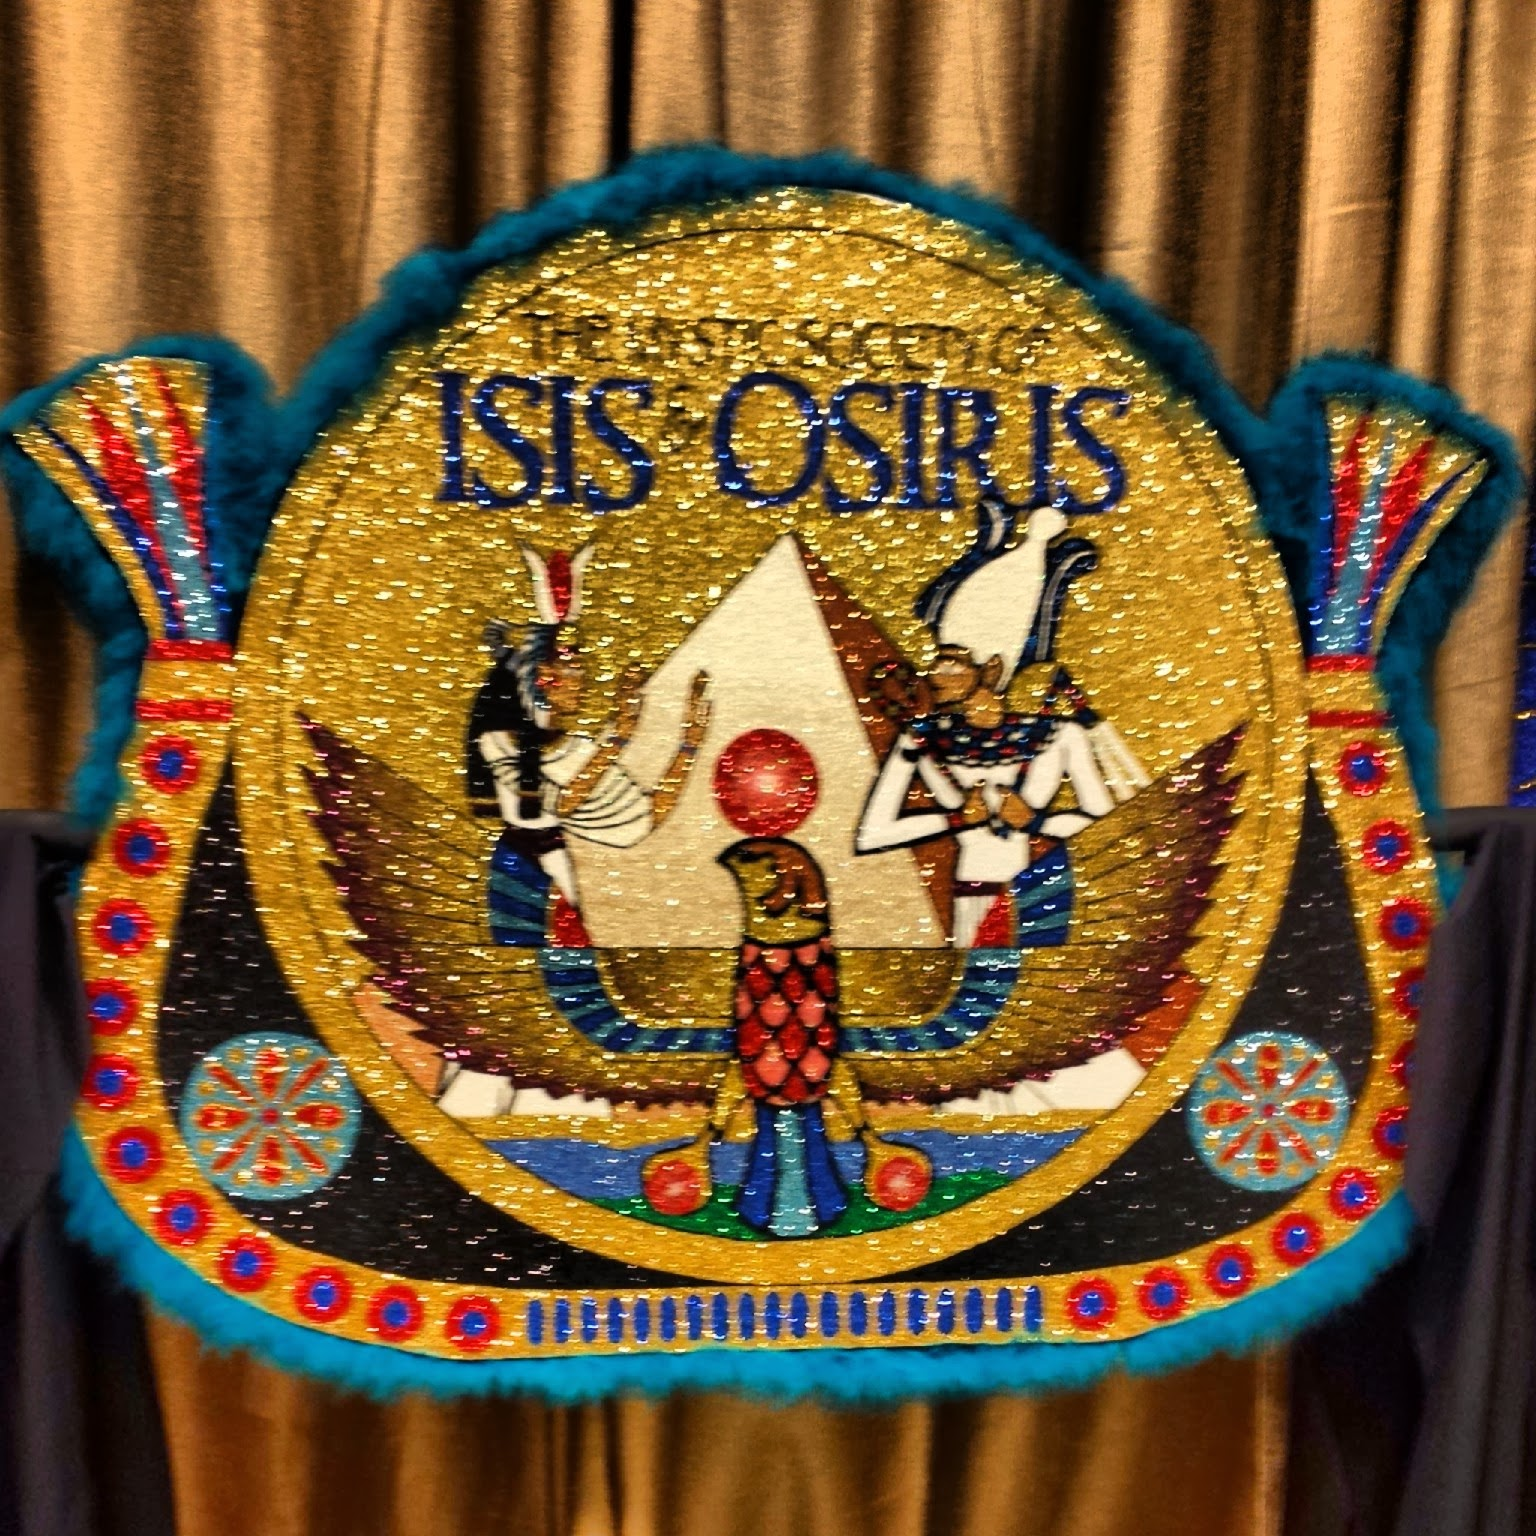 STR8 UP WITH A TWIST: The Mystic Society of Isis & Osiris